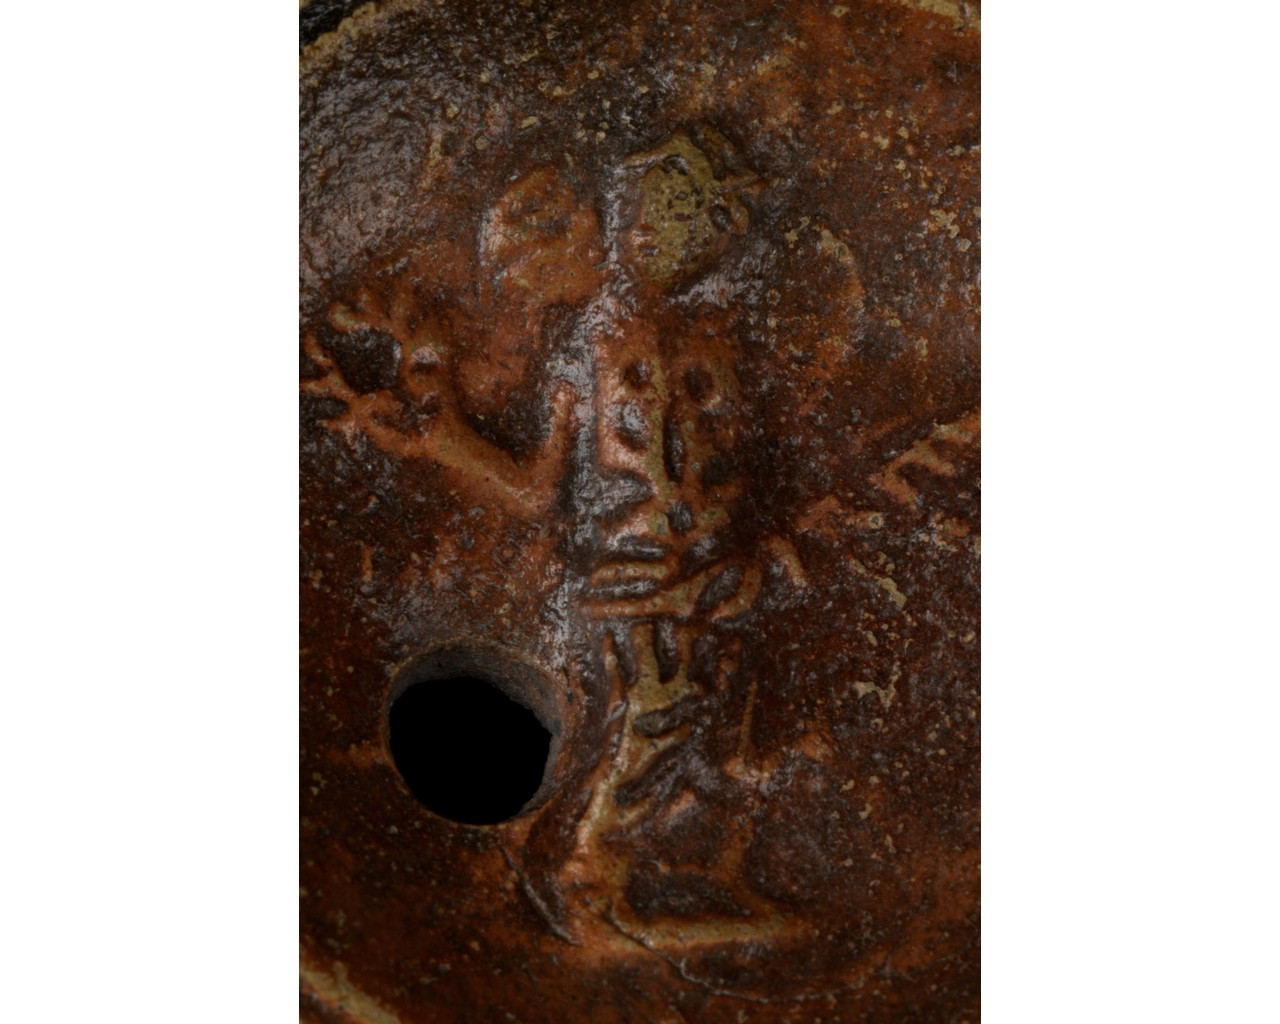 ROMAN TERRACOTTA OIL LAMP WITH CERES AND MAKERS MARK - Image 4 of 6